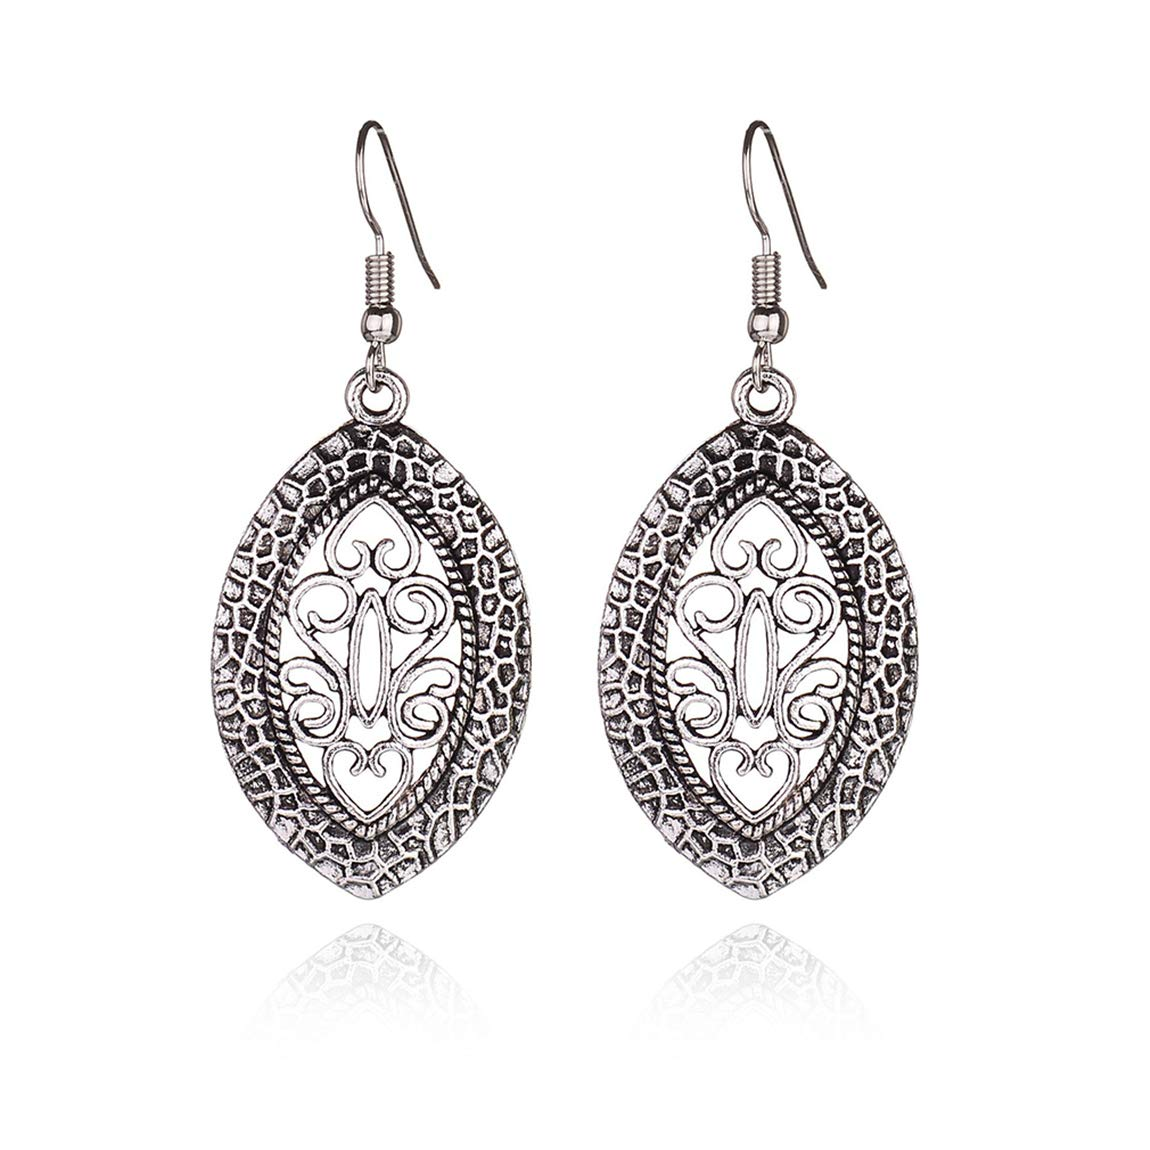 Weiy Bohemian Ethnic Style Hollow Carved Dangle Earrings Fashion Vintage Charming Stylish Sliver Drop Earrings Jewelry Gift For Women Girls